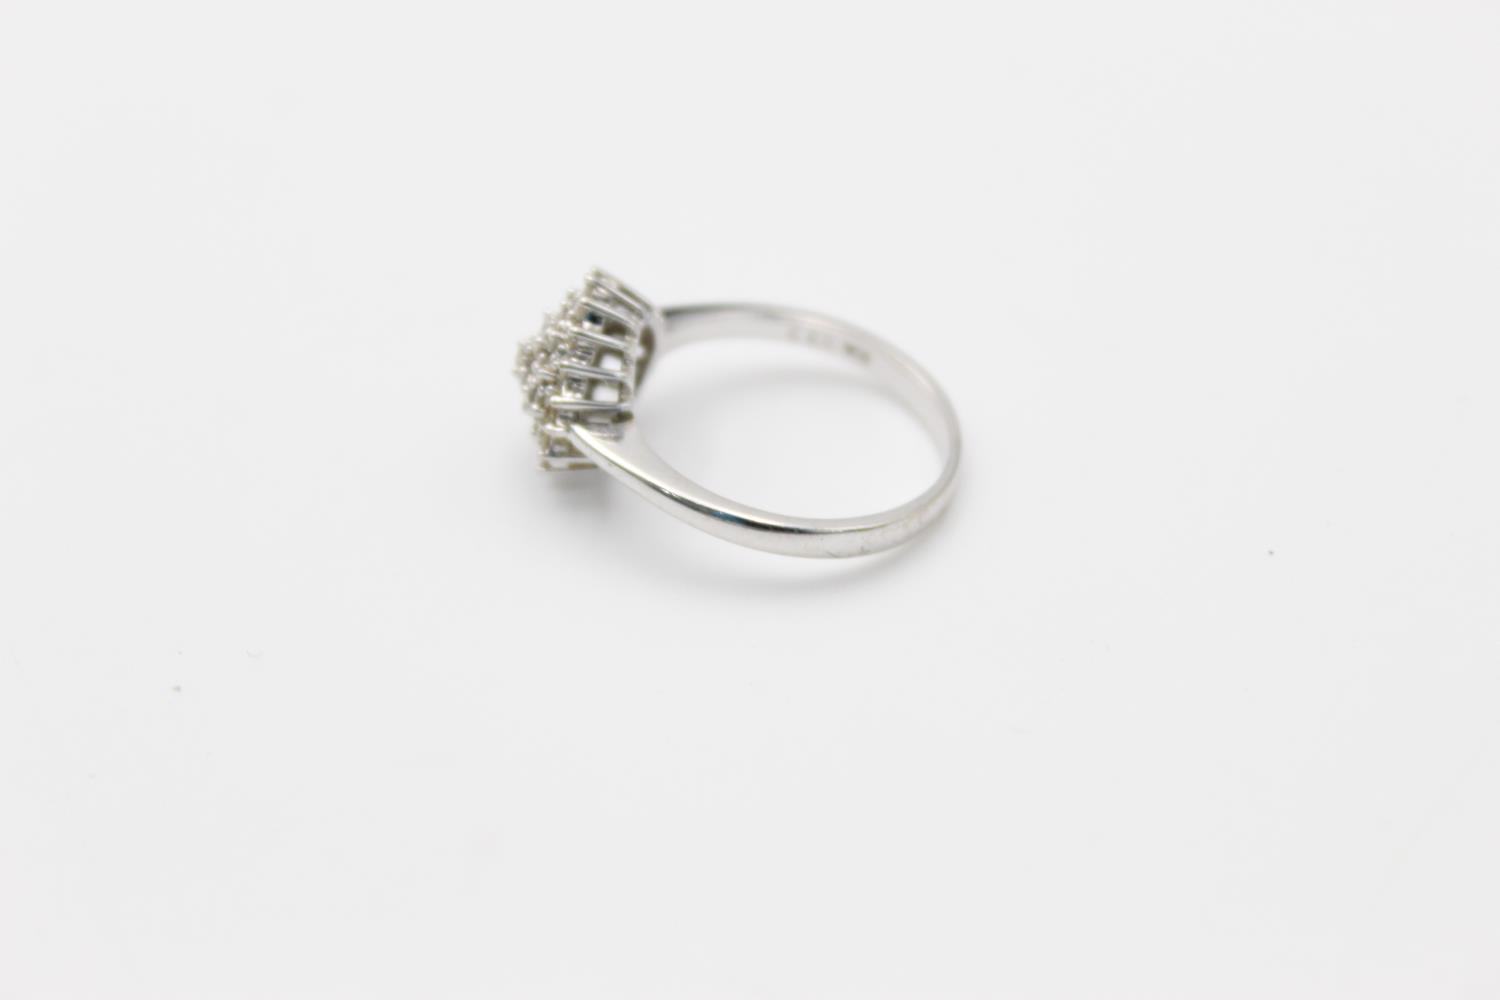 9ct white gold diamond cluster ring 3.4g Size P - Image 2 of 5